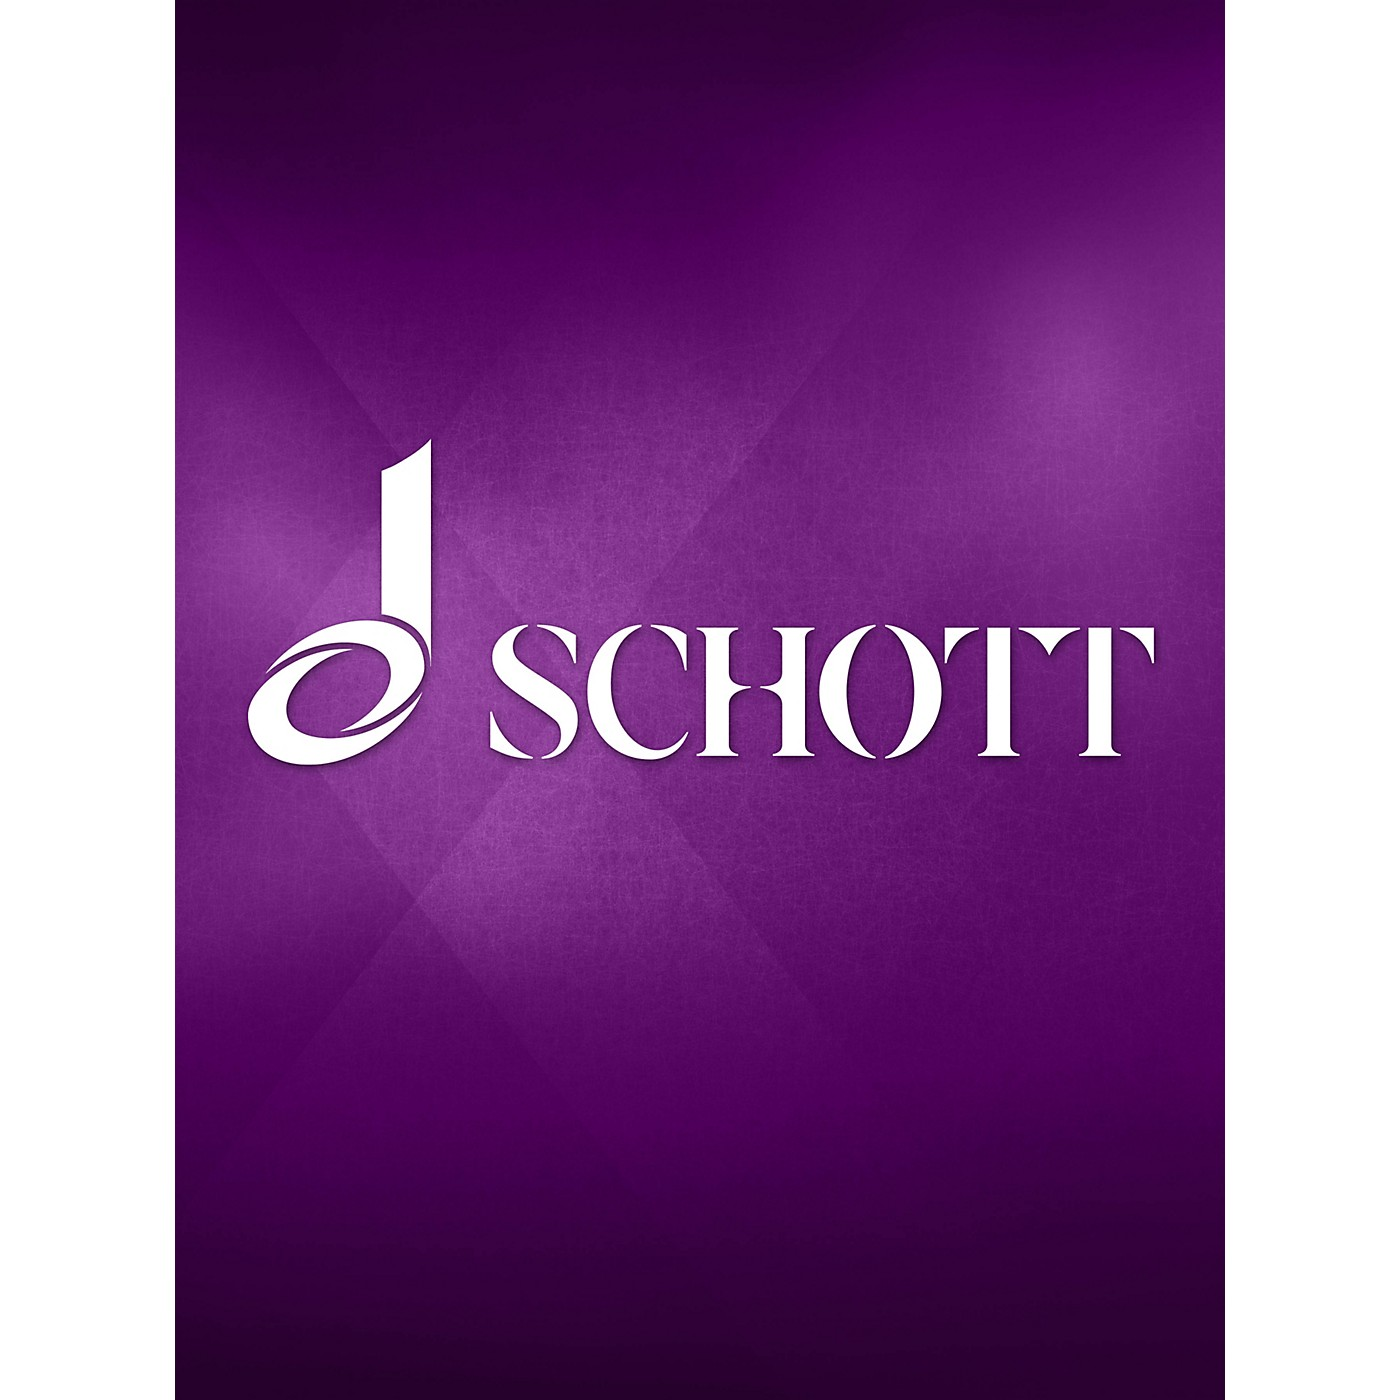 Schott Apparebit Repentina Dies (1947) (Cantata for Mixed Choir with Brass) Vocal Score by Paul Hindemith thumbnail